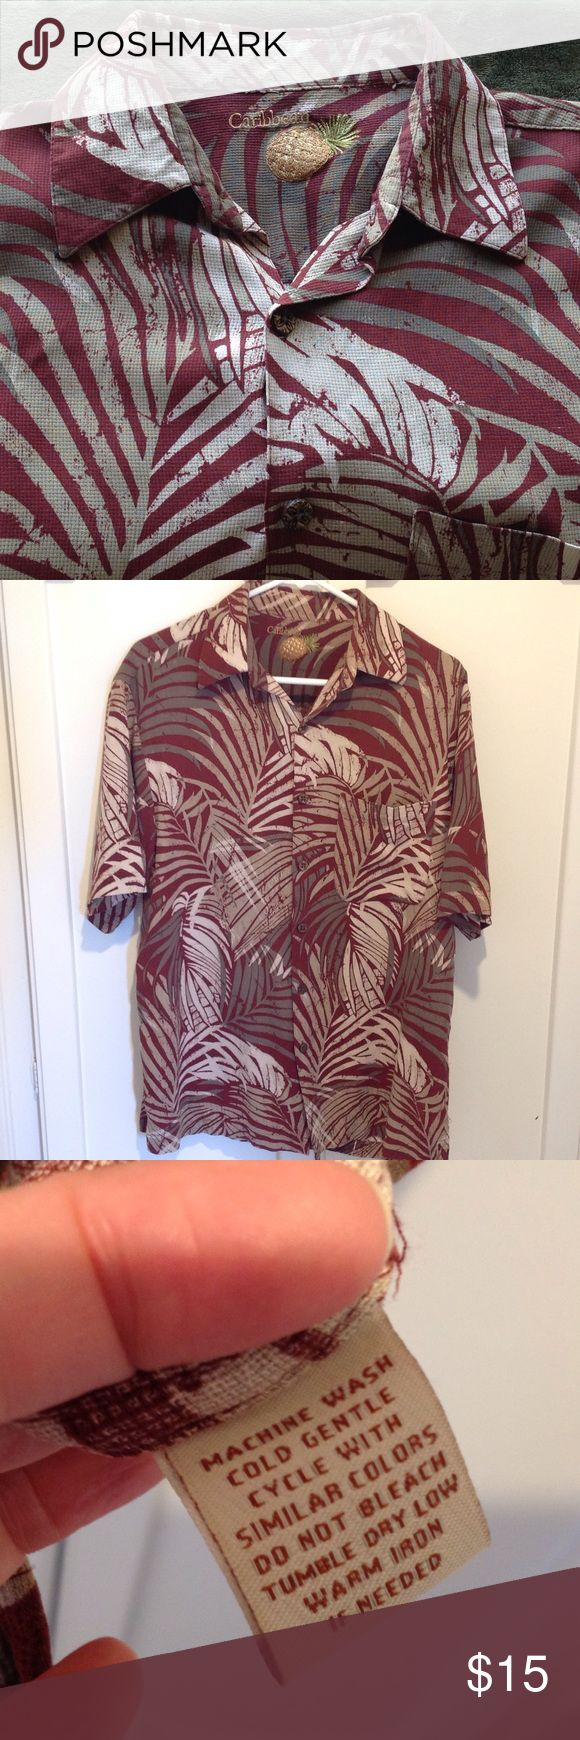 Caribbean shirt Great Print with leaves in warm colors, will go with any dress pant, or jeans or shorts! Perfect for that go to casual shirt. The size tag is cut out as my son can't stand any tags on his neck. Caribbean Shirts Casual Button Down Shirts